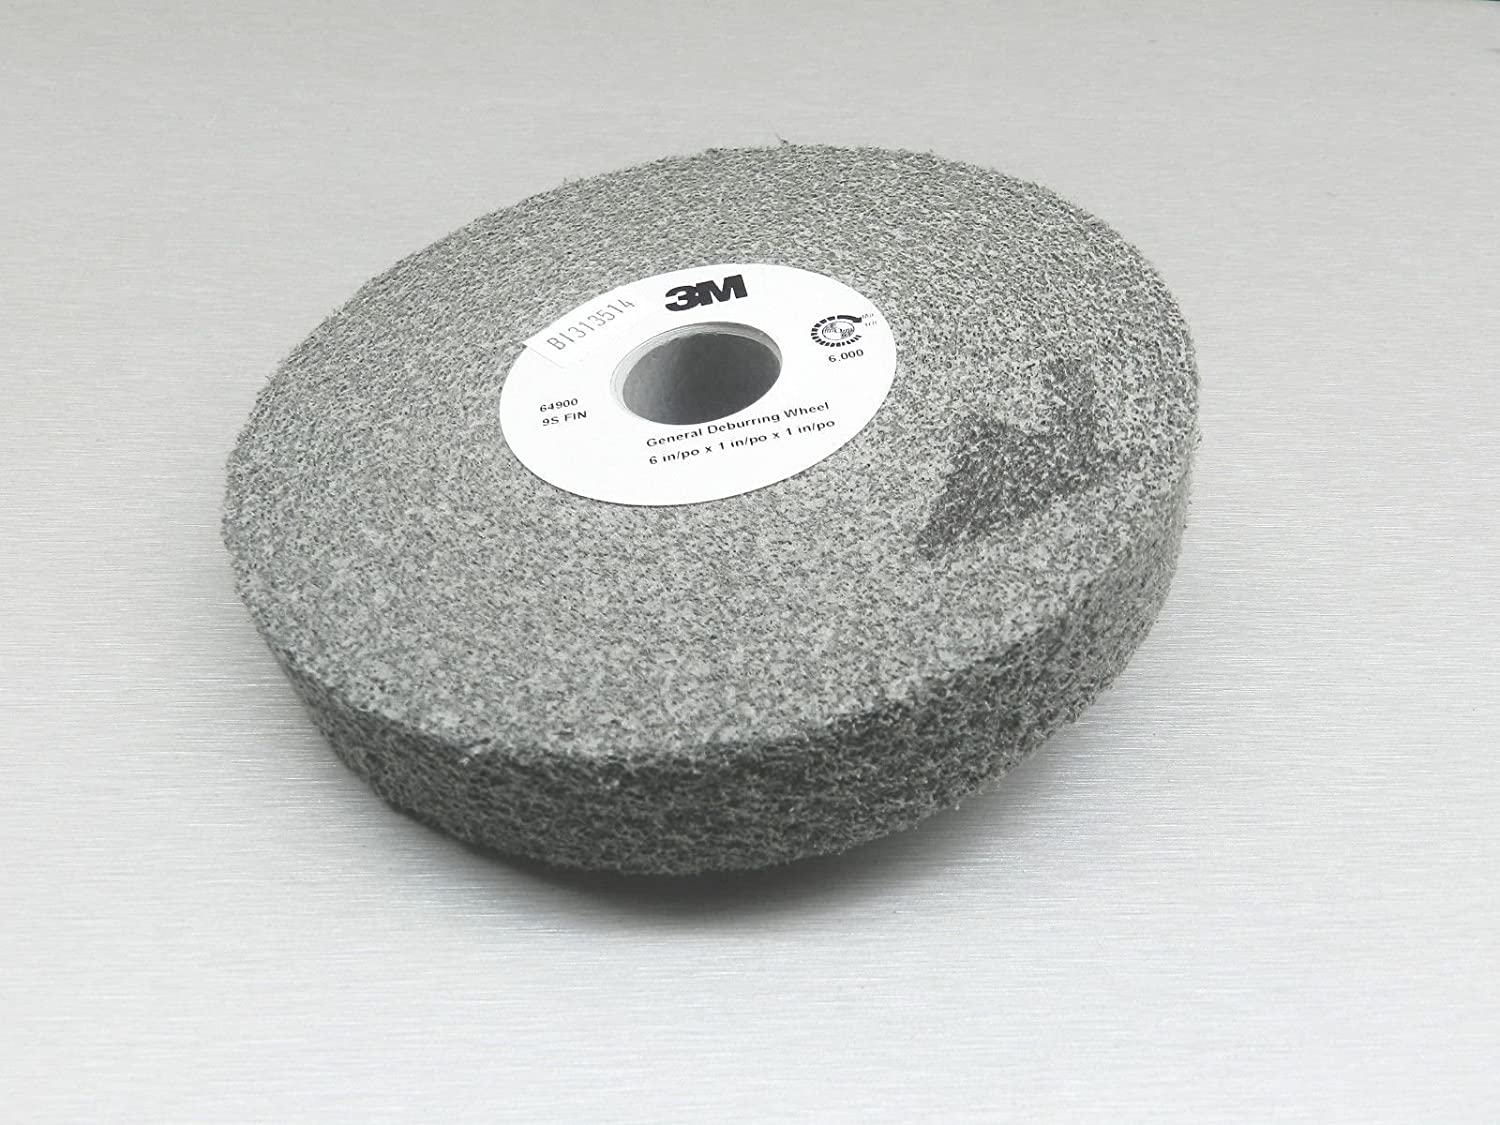 6 in x 1//2 in x 1 in 9S FIN GD-WL 3M You are purchasing the Min order quantity which is 1 Wheels General Deburring Wheel